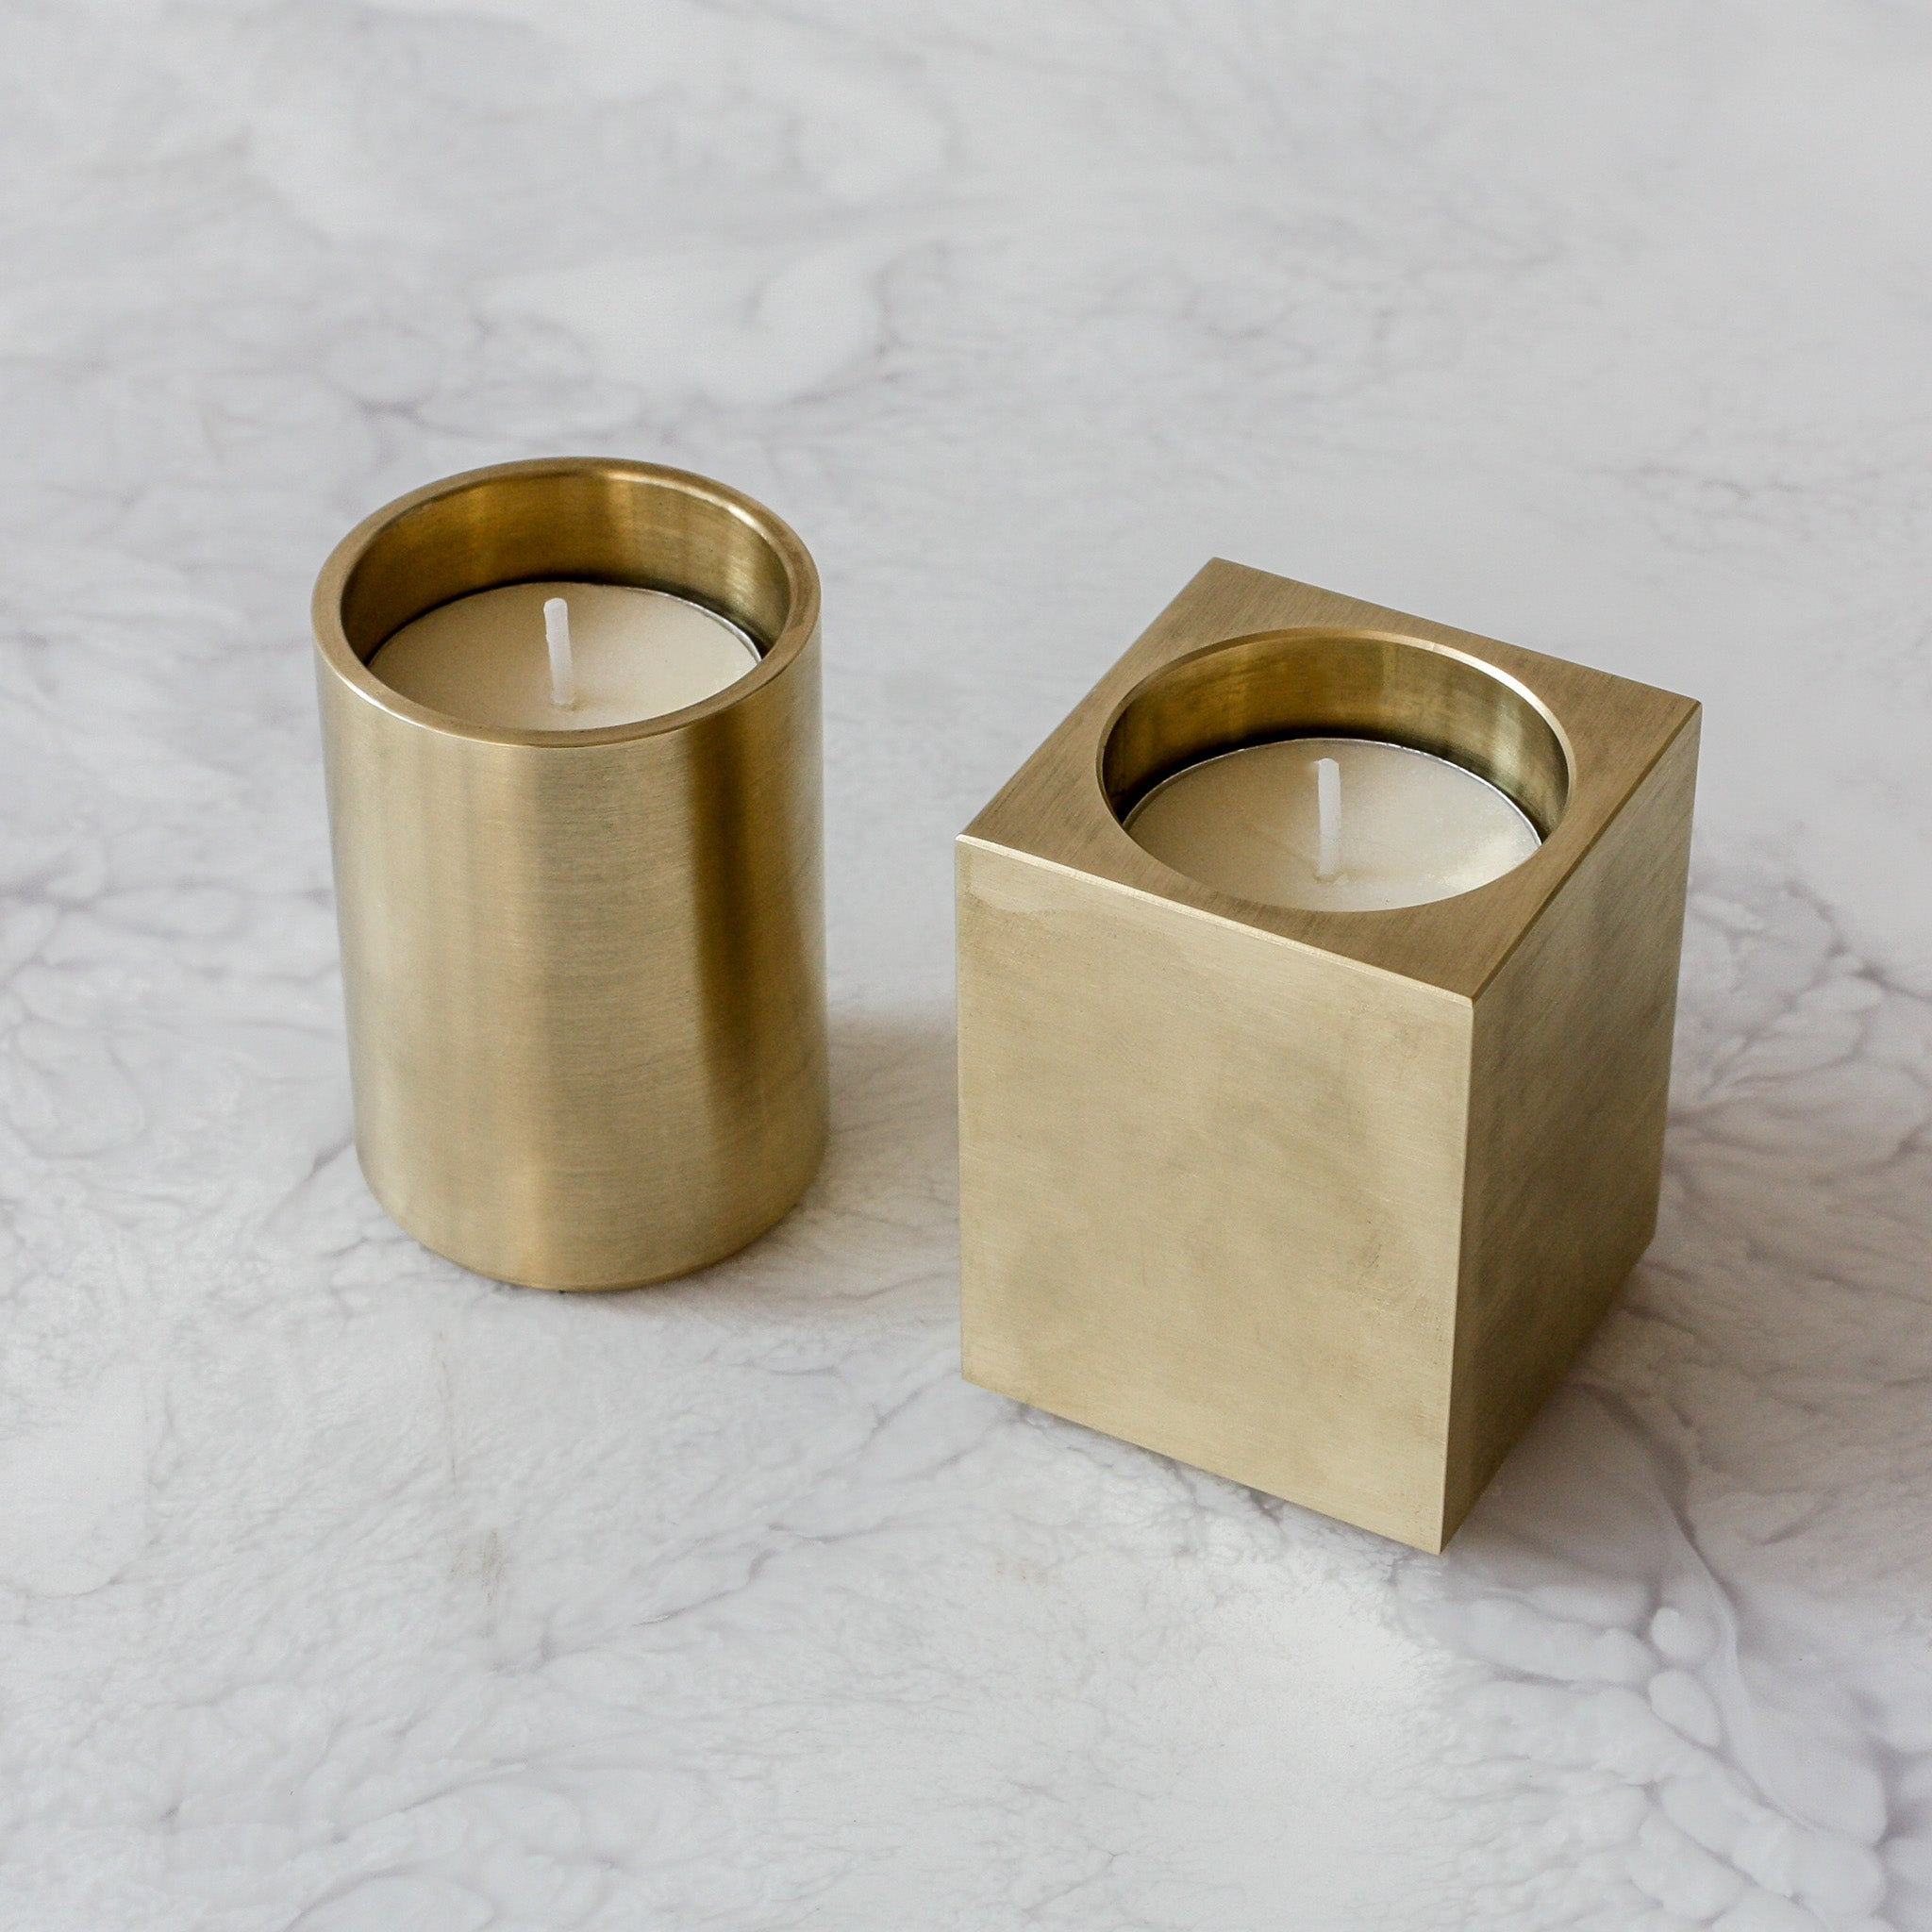 Solid Brass Tealight Votives Round and Square